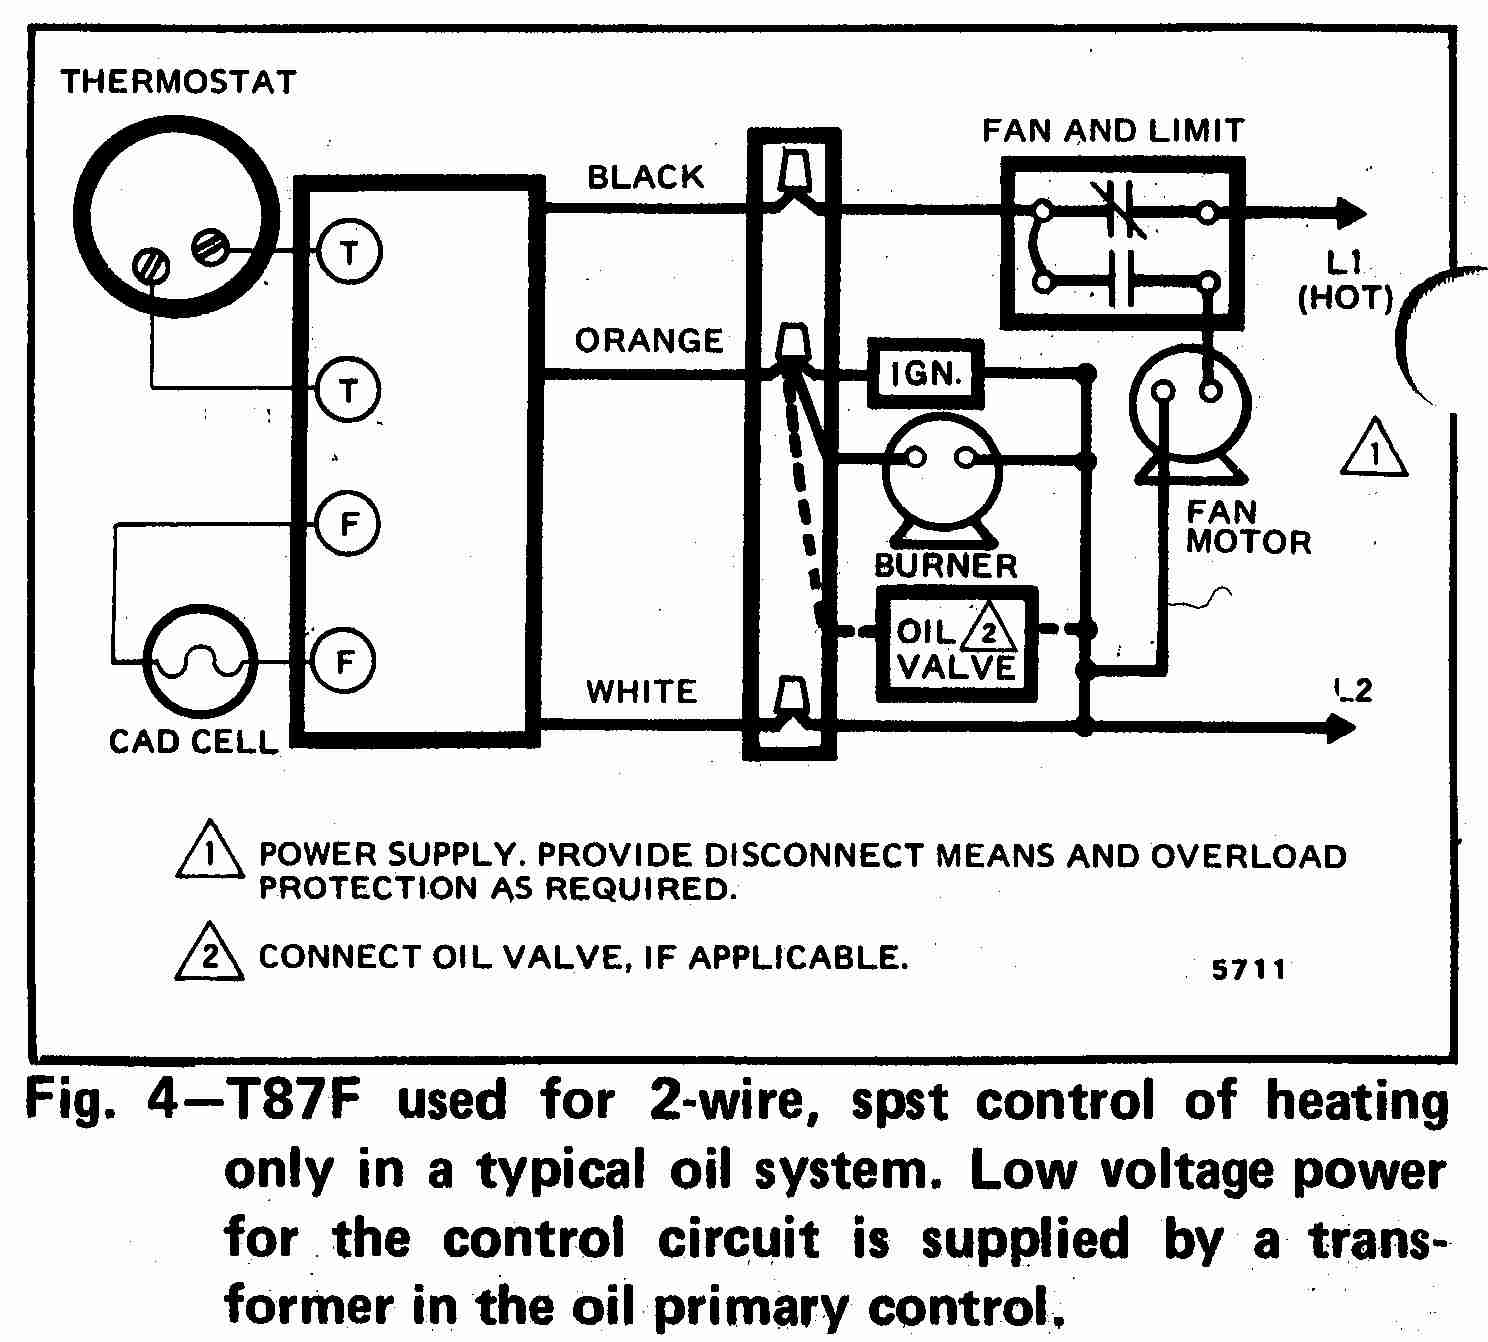 TT_T87F_0002_2W_DJF room thermostat wiring diagrams for hvac systems robertshaw gas valve wiring diagram at panicattacktreatment.co